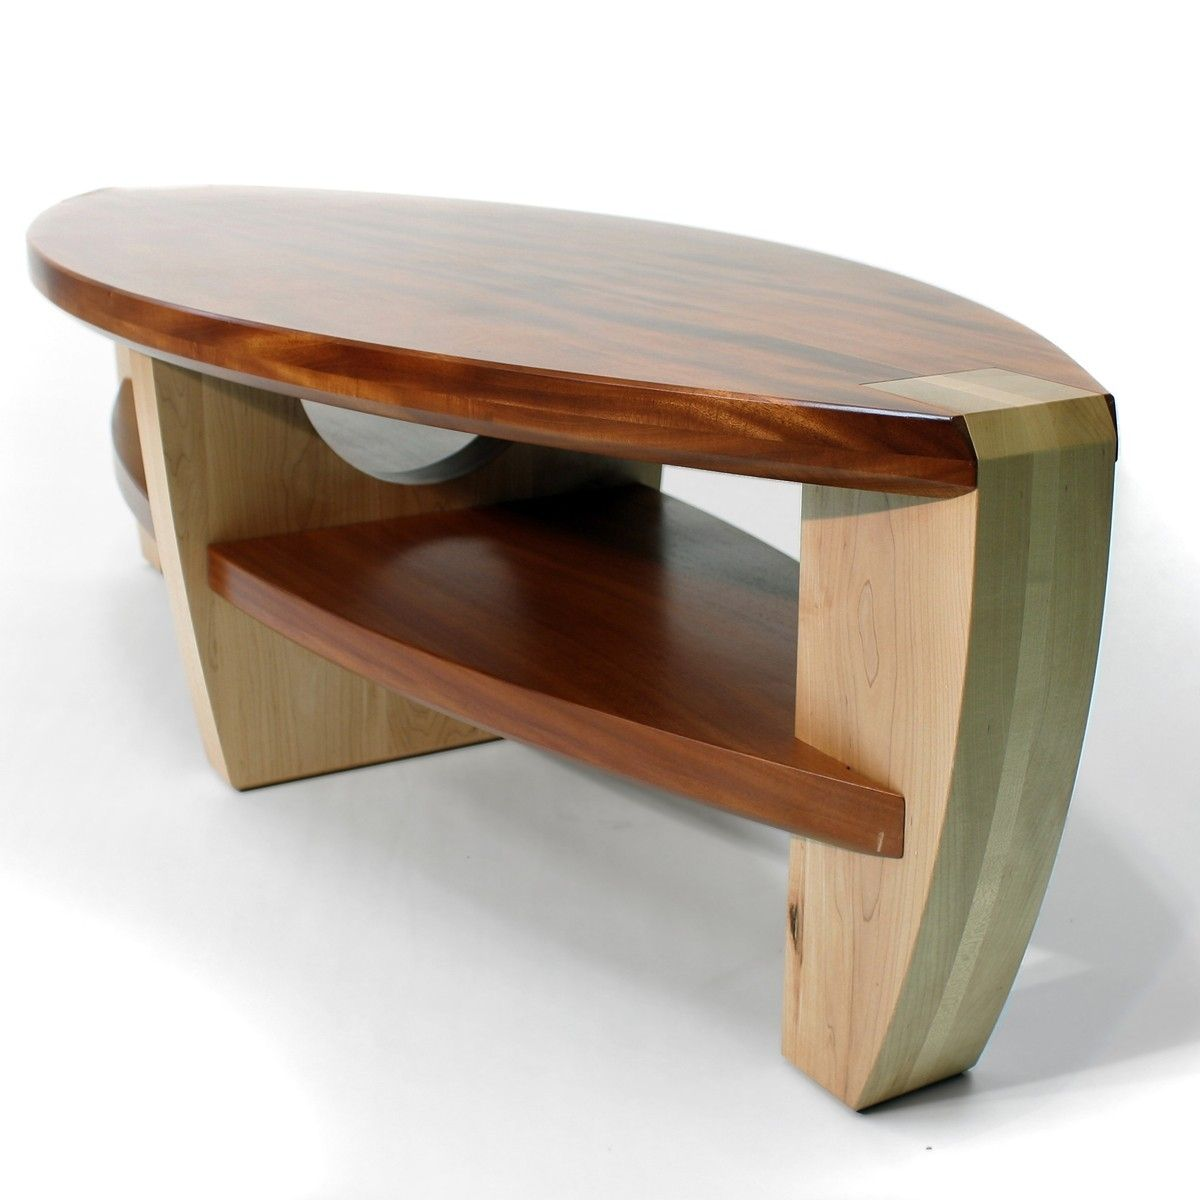 Hand Crafted Coffee Table By Pagomo Designs Custommade Com Coffee Table Diy Coffee Table Diy Coffe Table [ 1200 x 1200 Pixel ]